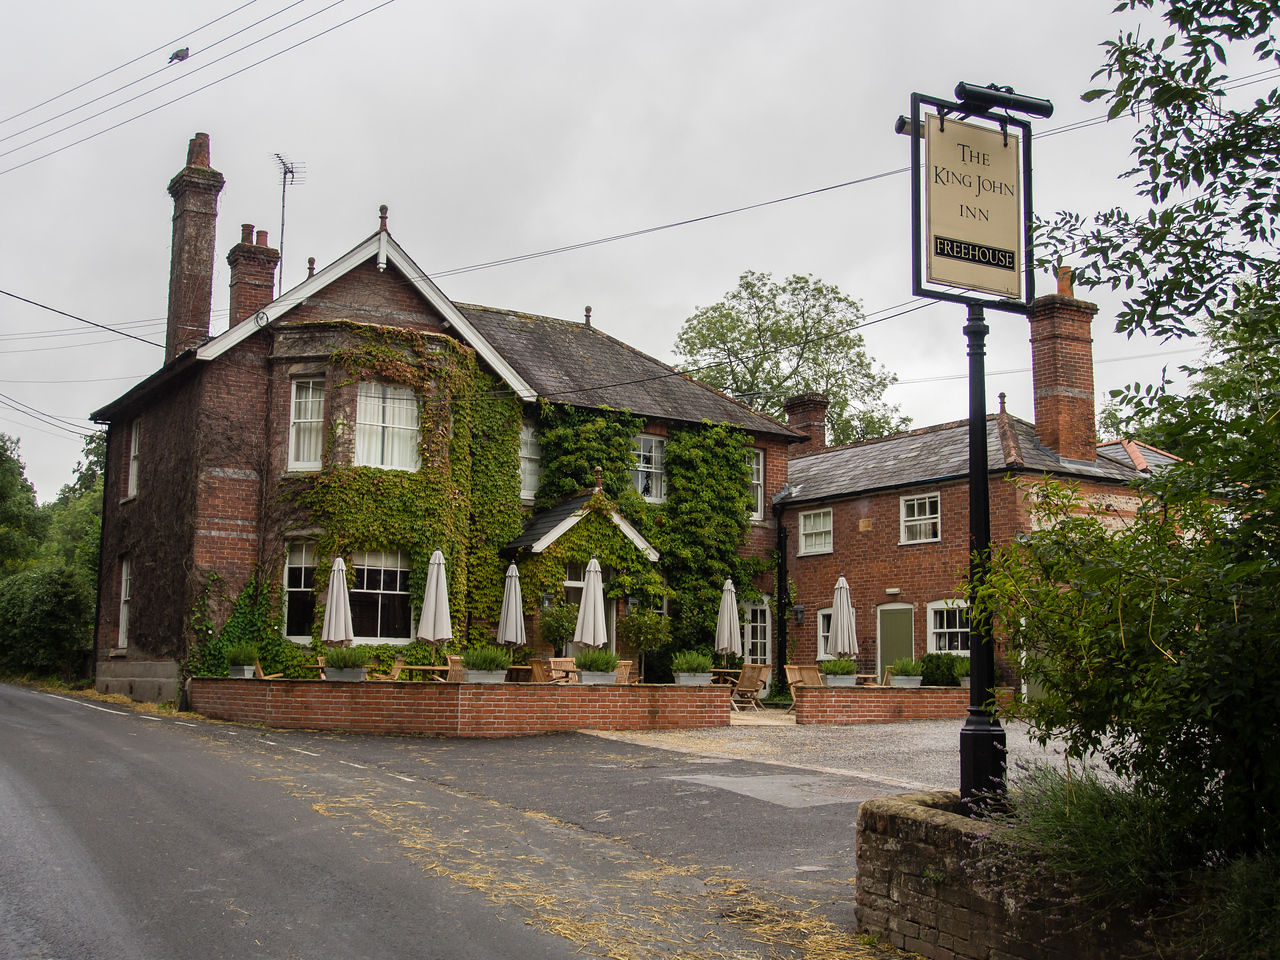 King John's Inn for two nights